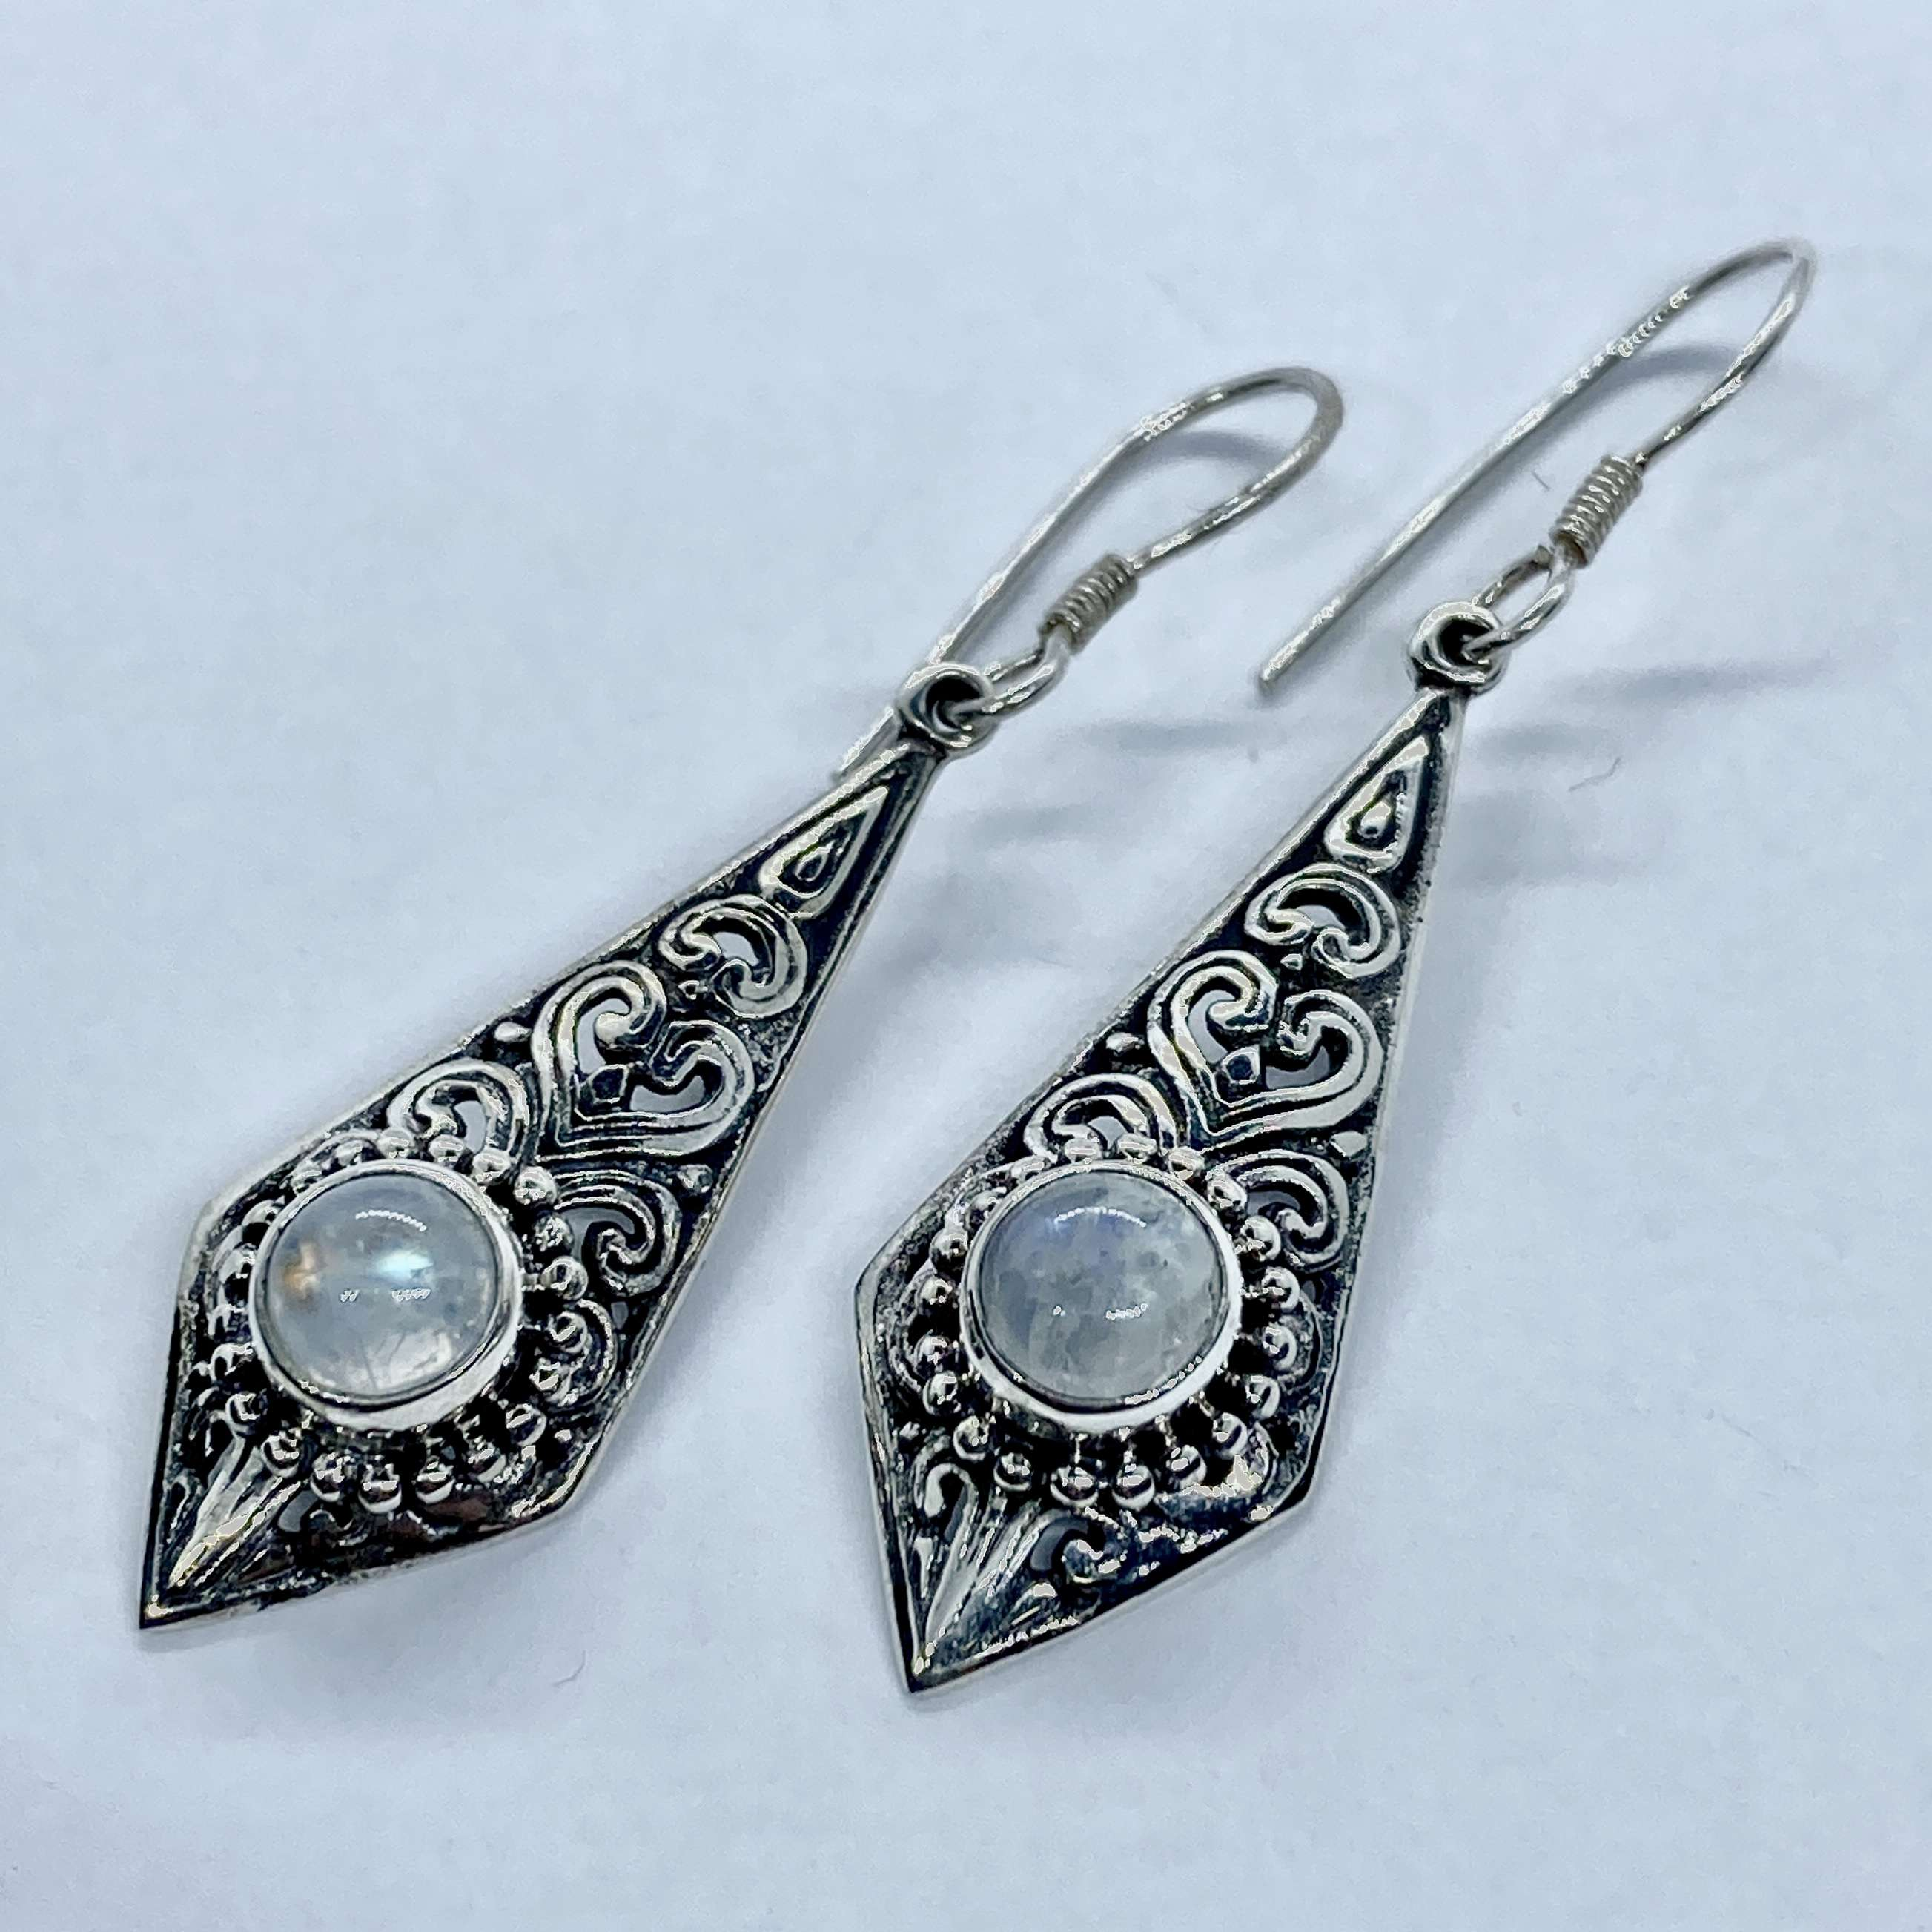 BALI SILVER EARRINGS WITH MOONSTONE